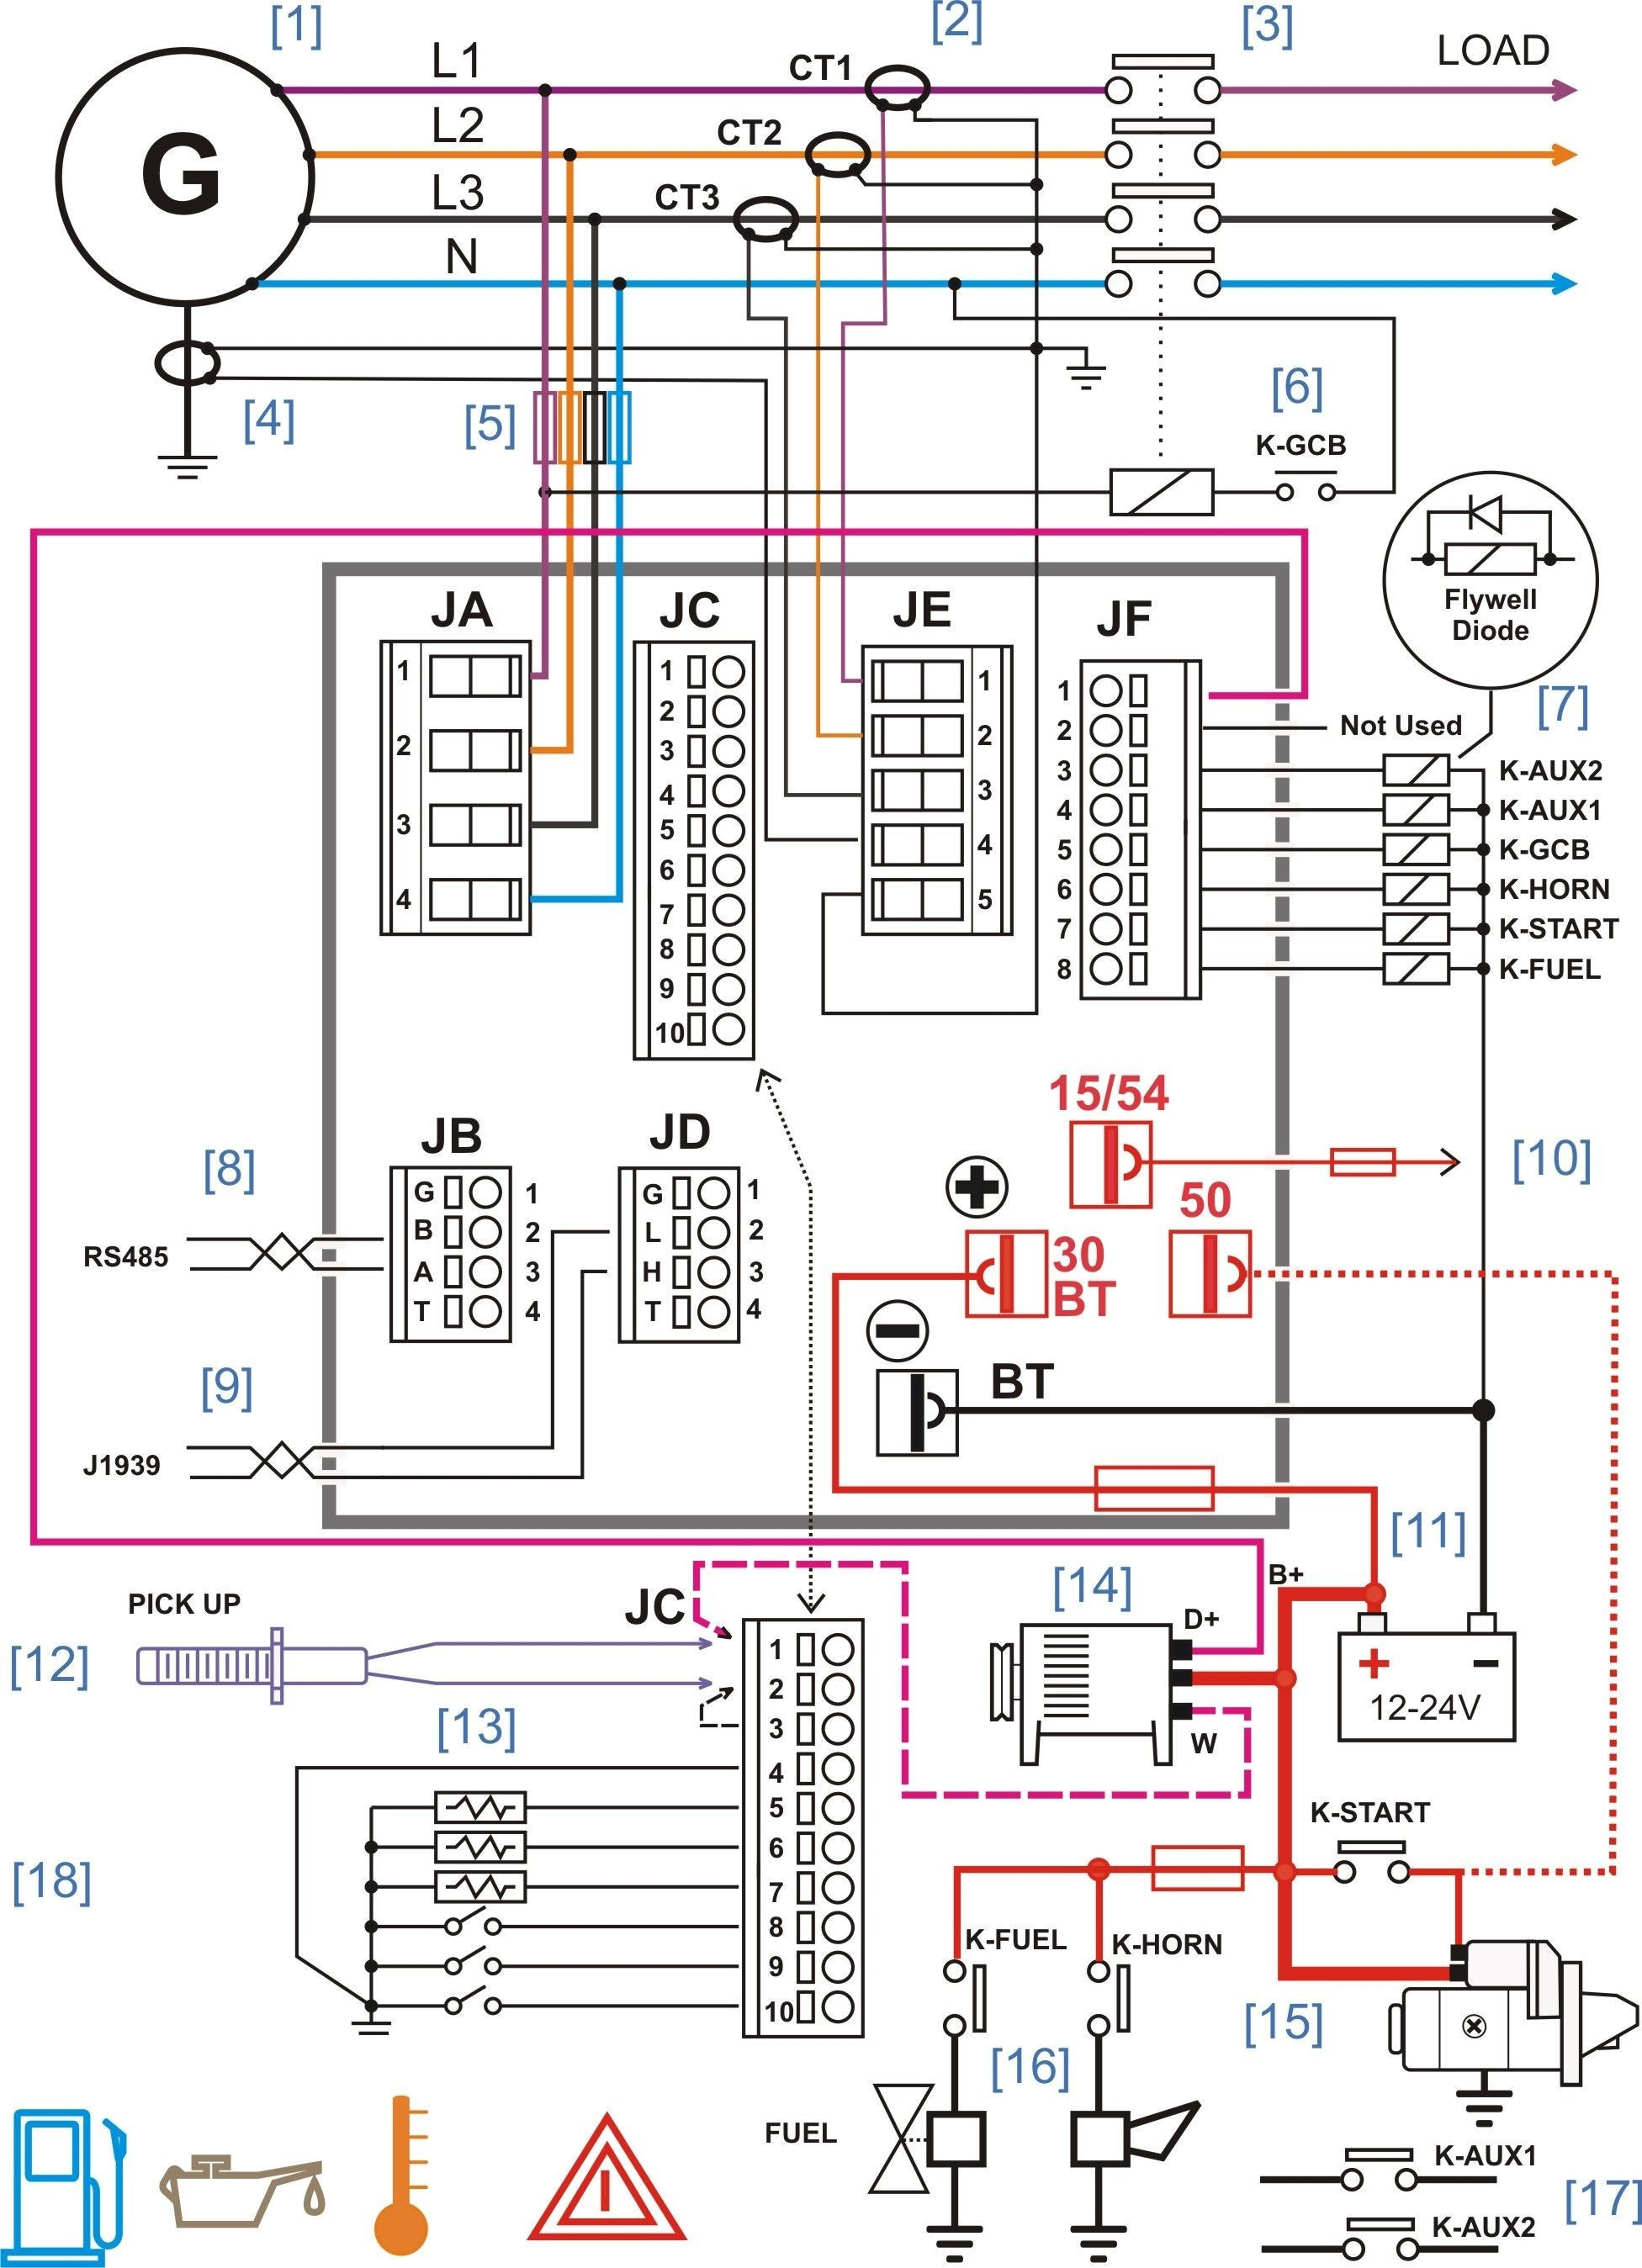 plc panel wiring diagram pdf Collection-Kubota Generator Wiring Diagram New Sel Generator Control Panel Wiring Diagram Fresh Amazing Olympian 3-t